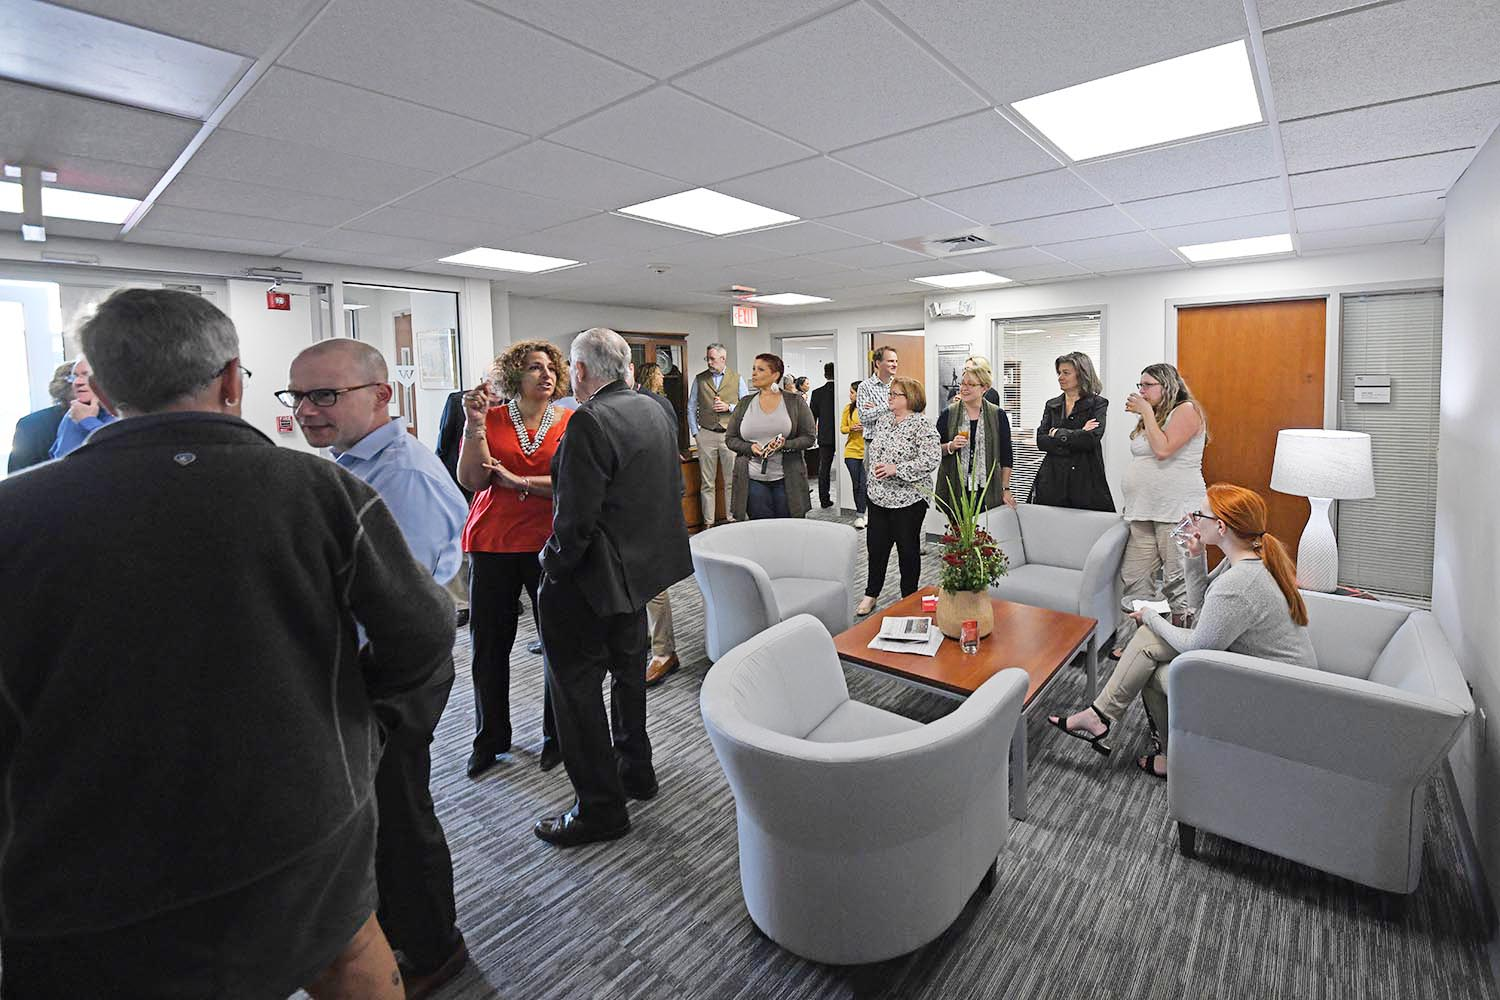 About 100 guests from Wesleyan and the Main Street community attended the Advancement Open House.